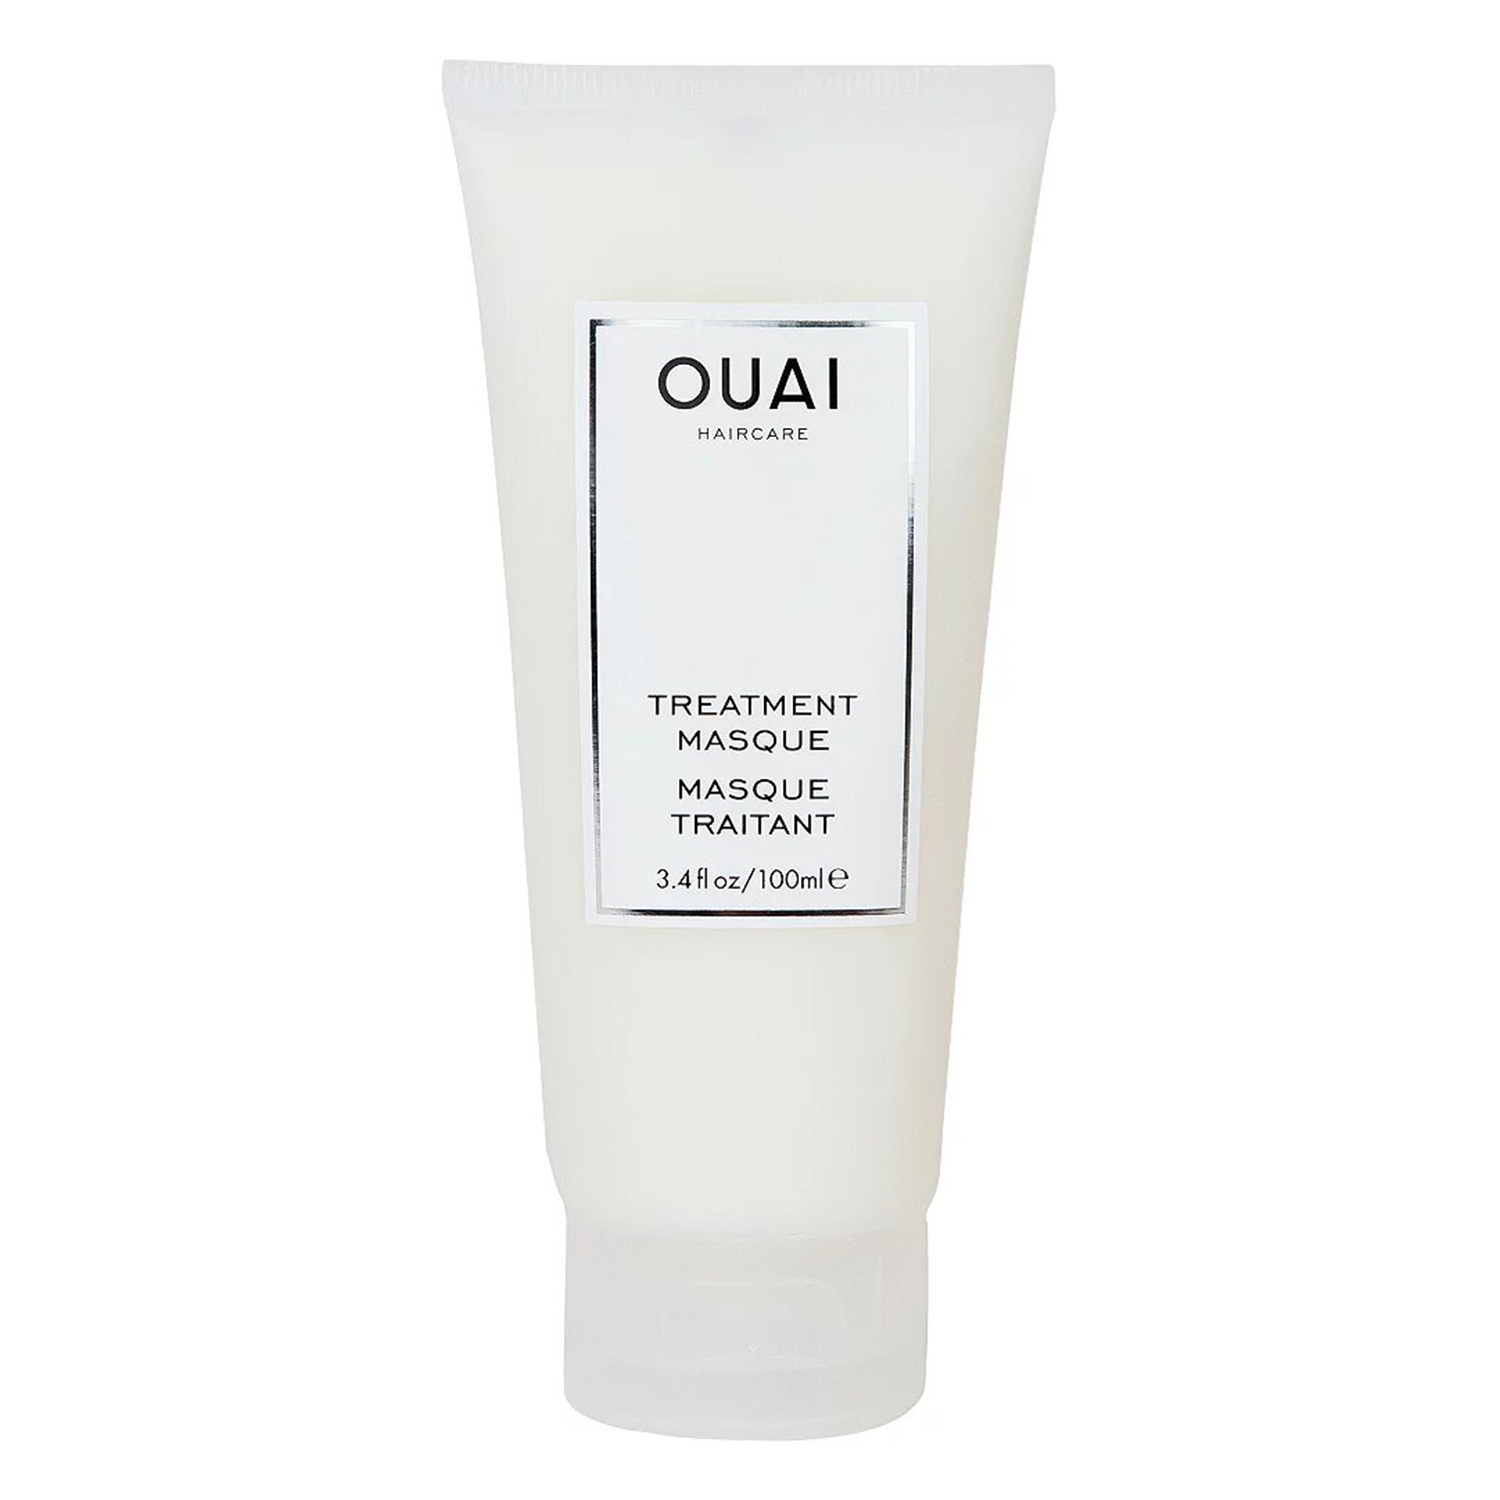 041720-ouai-treatment-masque-embed.jpg